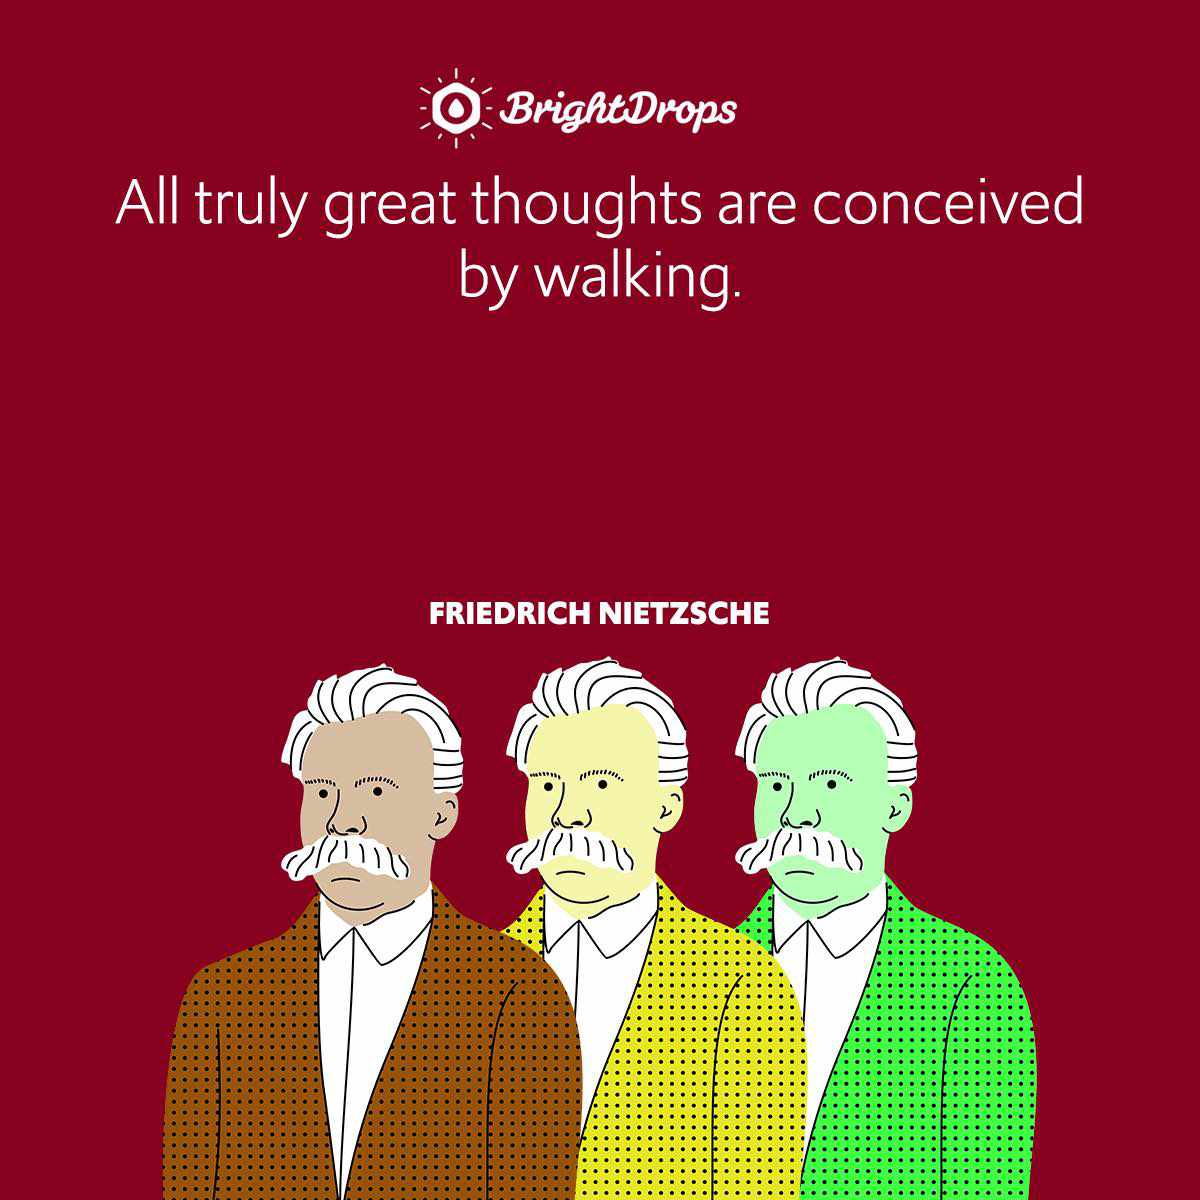 All truly great thoughts are conceived by walking.